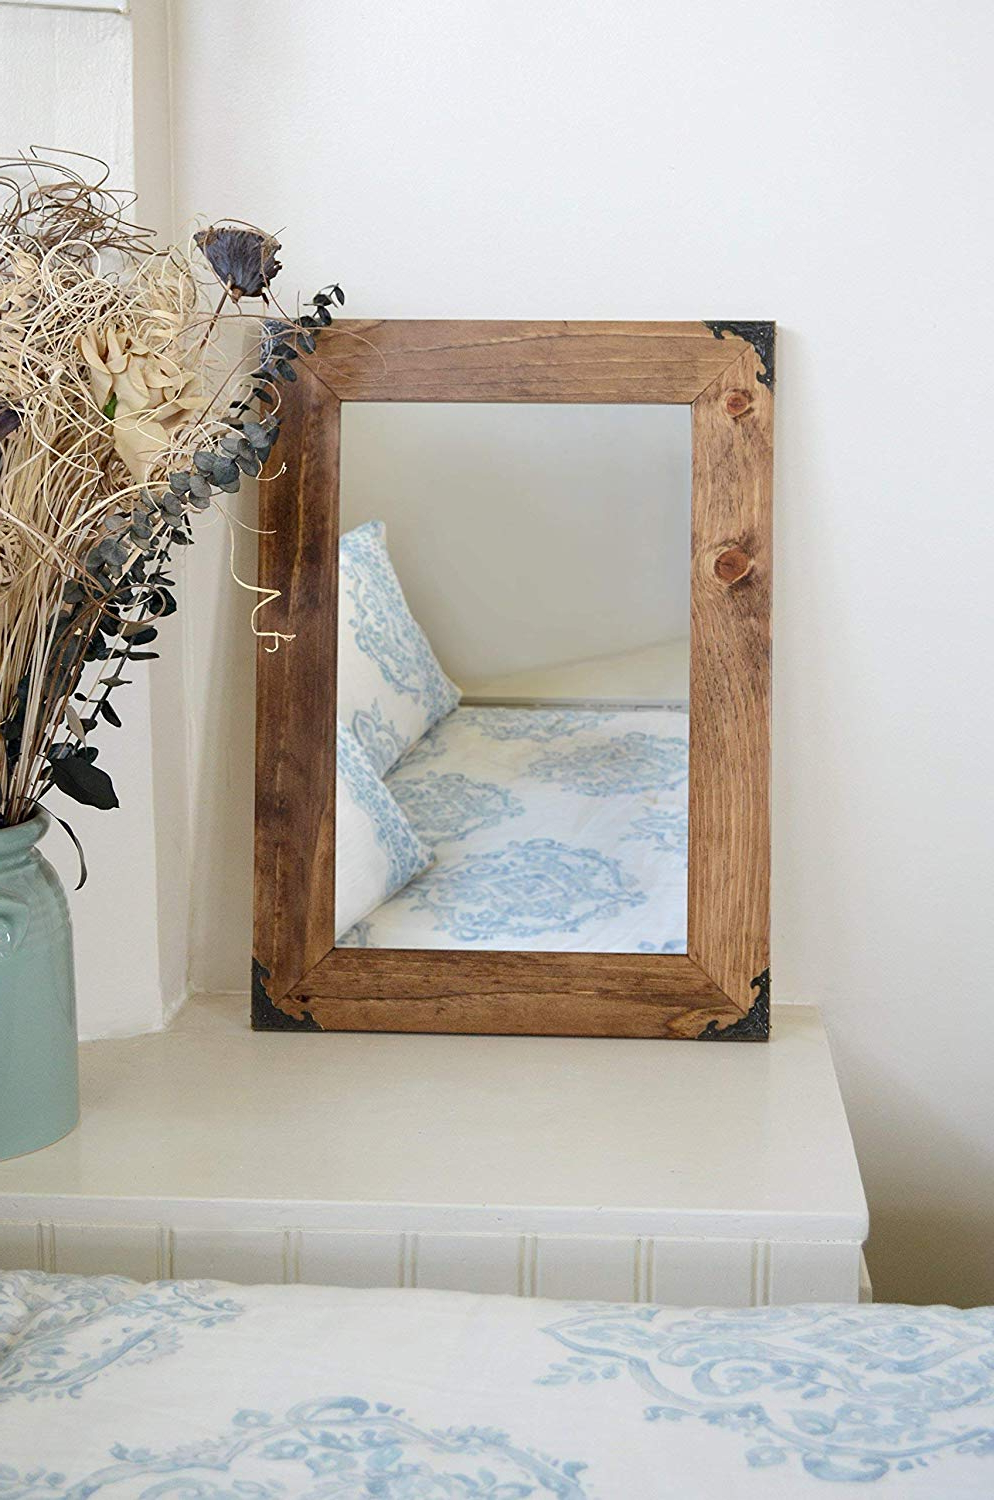 Large Wood Wall Mirrors Within Most Recent Amazon: Wooden Mirror With Metal Corners – Wall Mirror (Gallery 11 of 20)